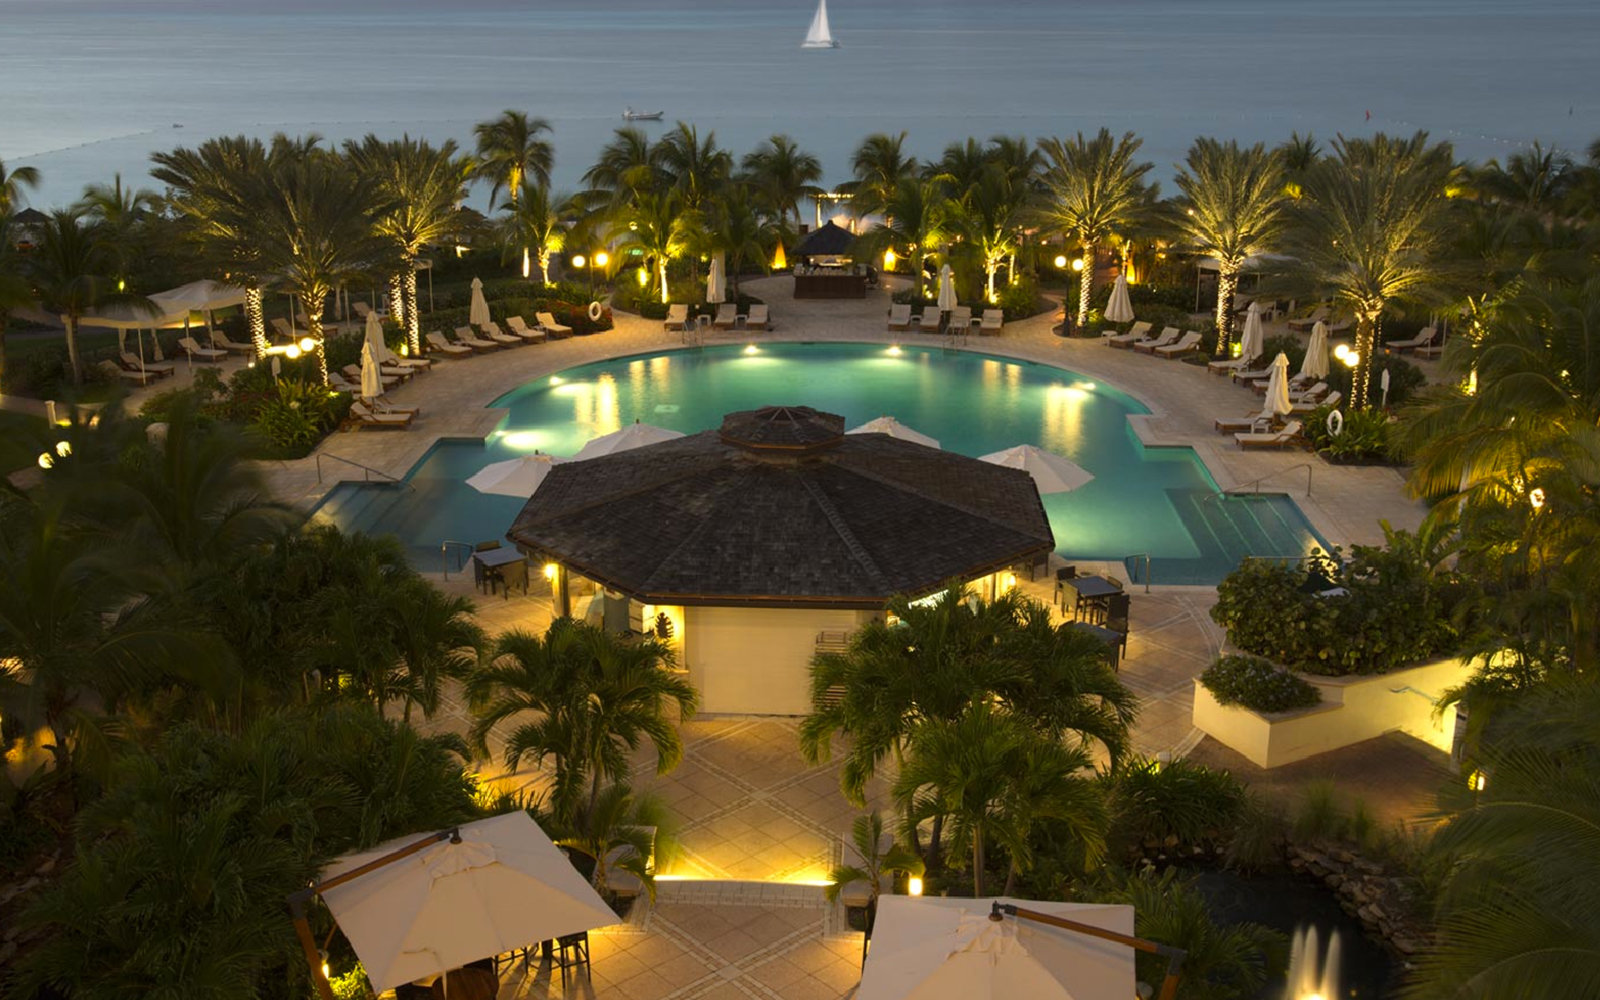 No. 4: Seven Stars Resort, Turks and Caicos